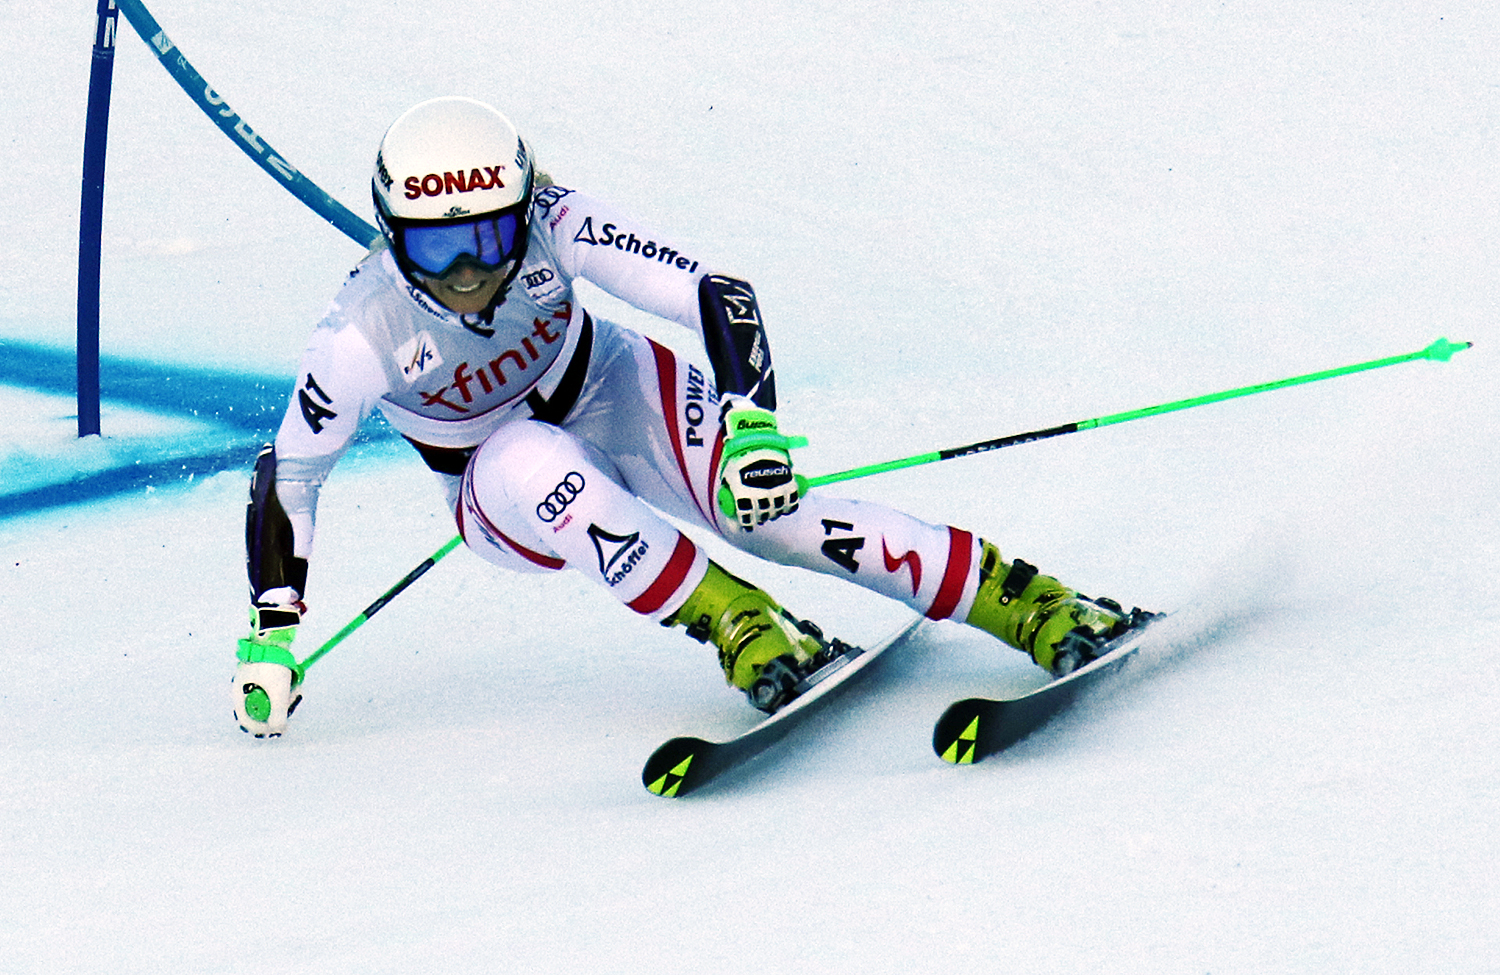 Austrian Eva-Maria Brem competes in the first run at the women's Audi FIS Ski World Cup giant slalom race at Killington in Vermont on Saturday, November 25, 2017. (FTO photo: Martin Griff)